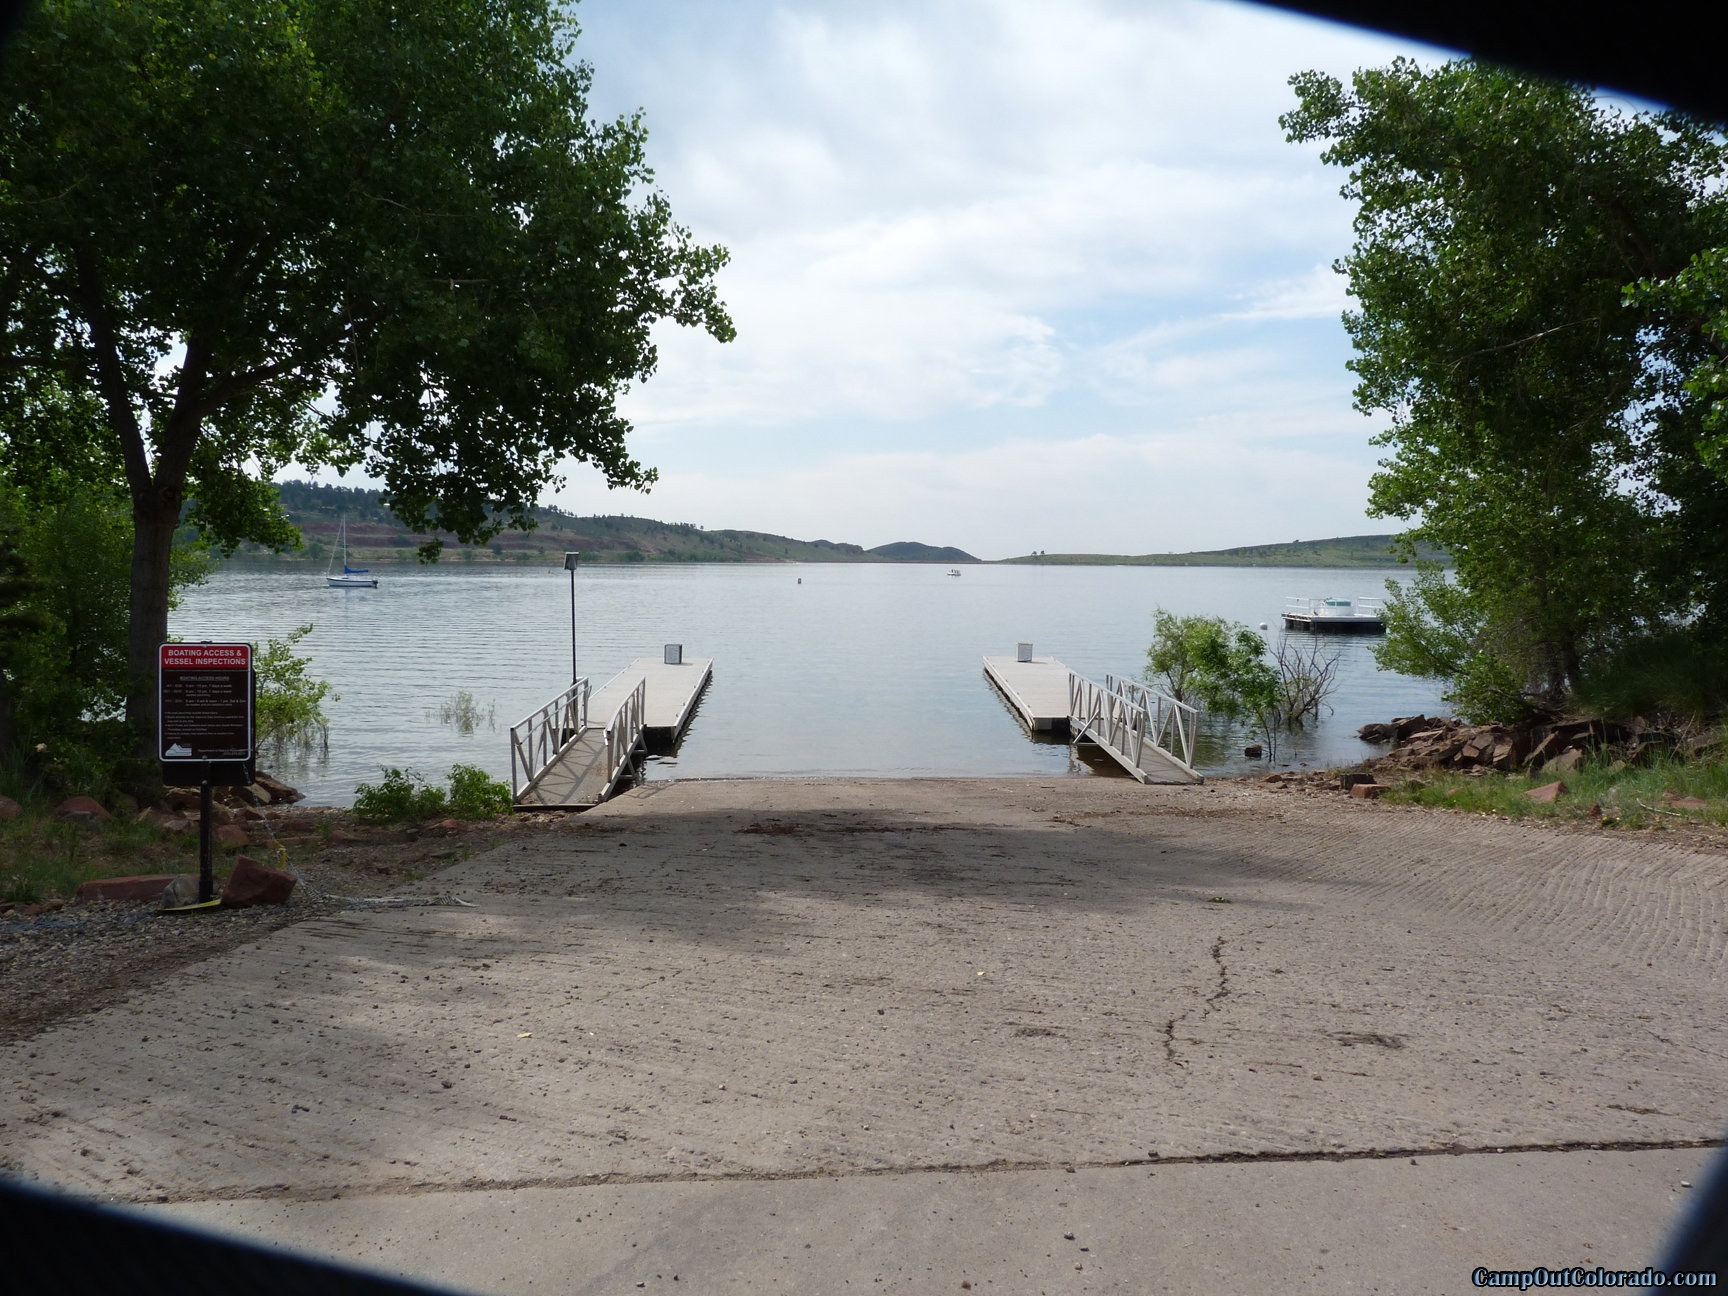 camp-out-colorado-carter-lake-boat-dock